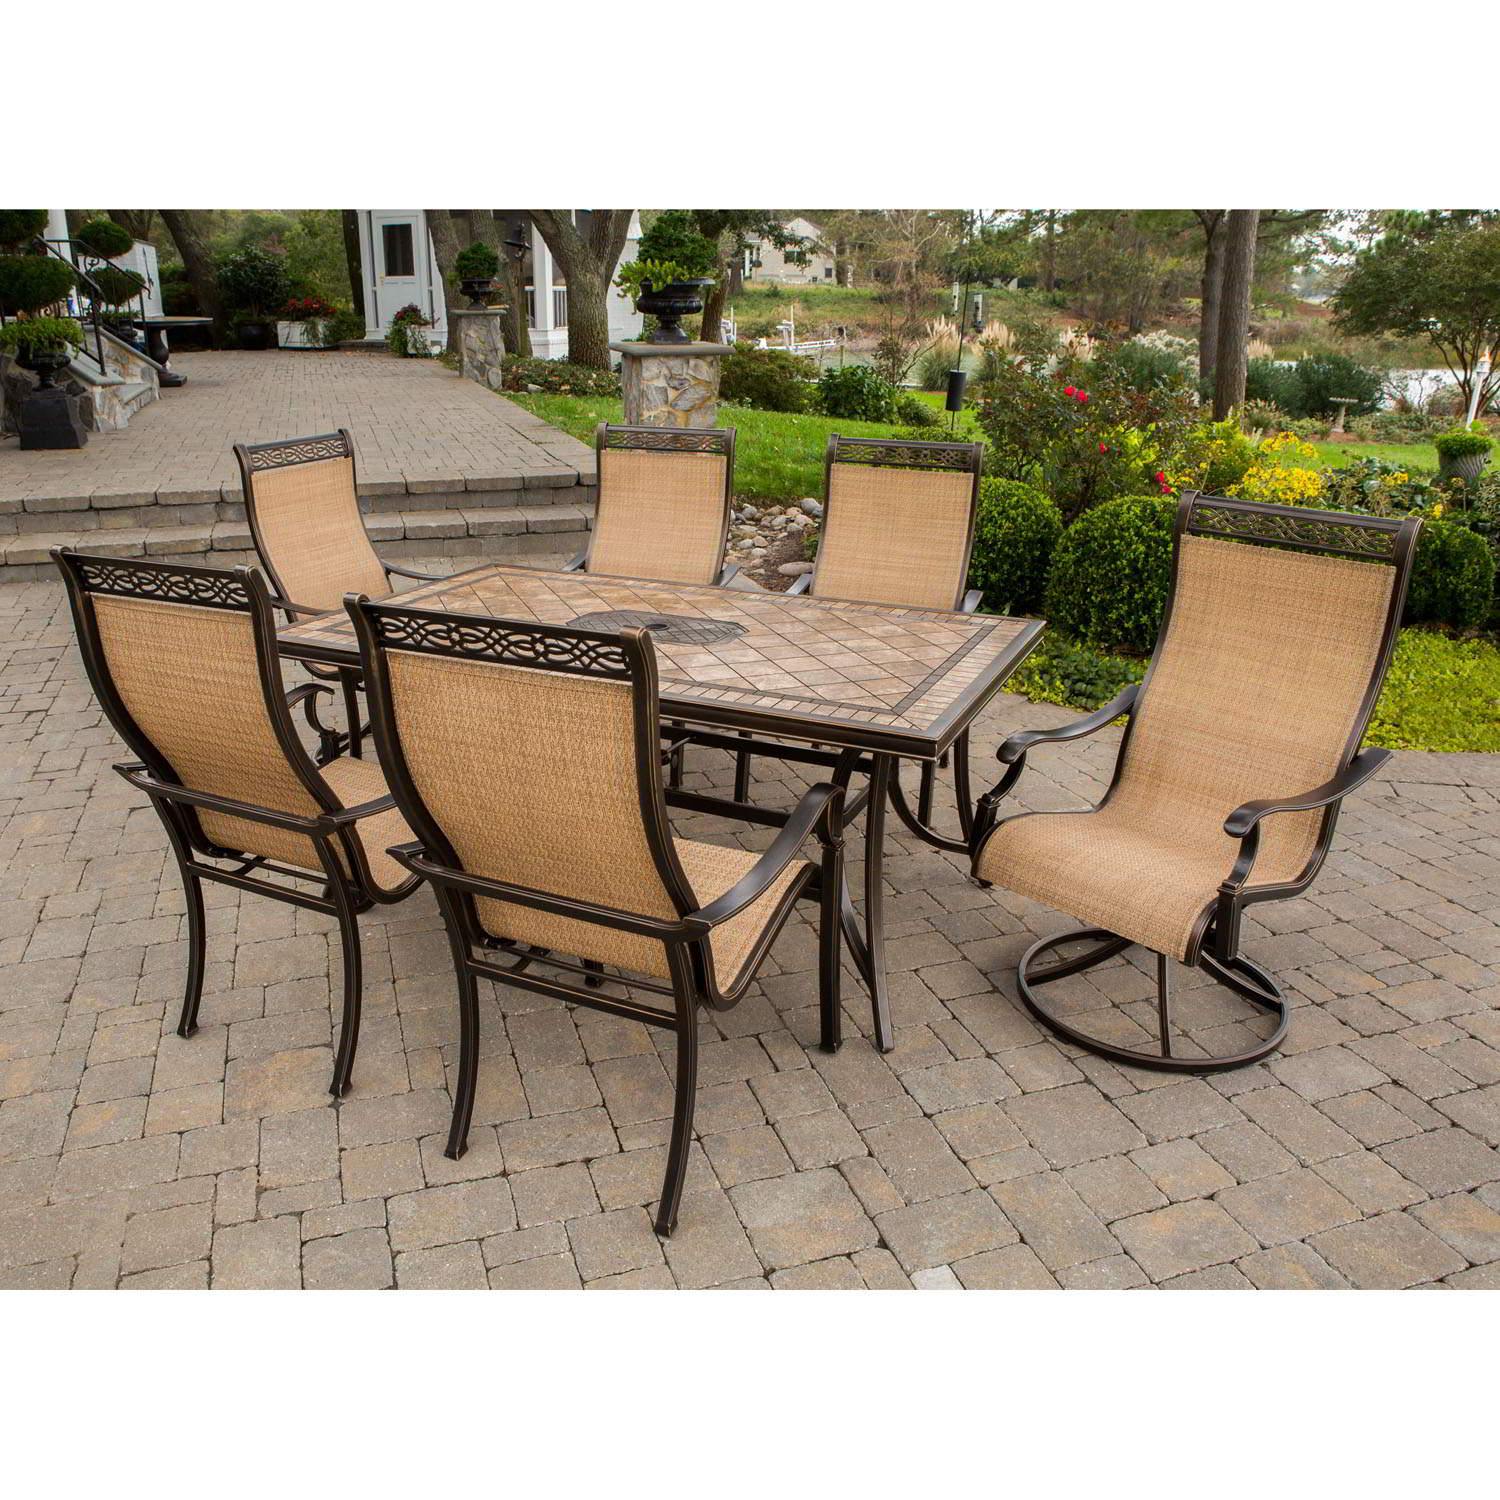 Outdoor dining sets monaco 7-piece dining set - monaco7pcsw WARWENH